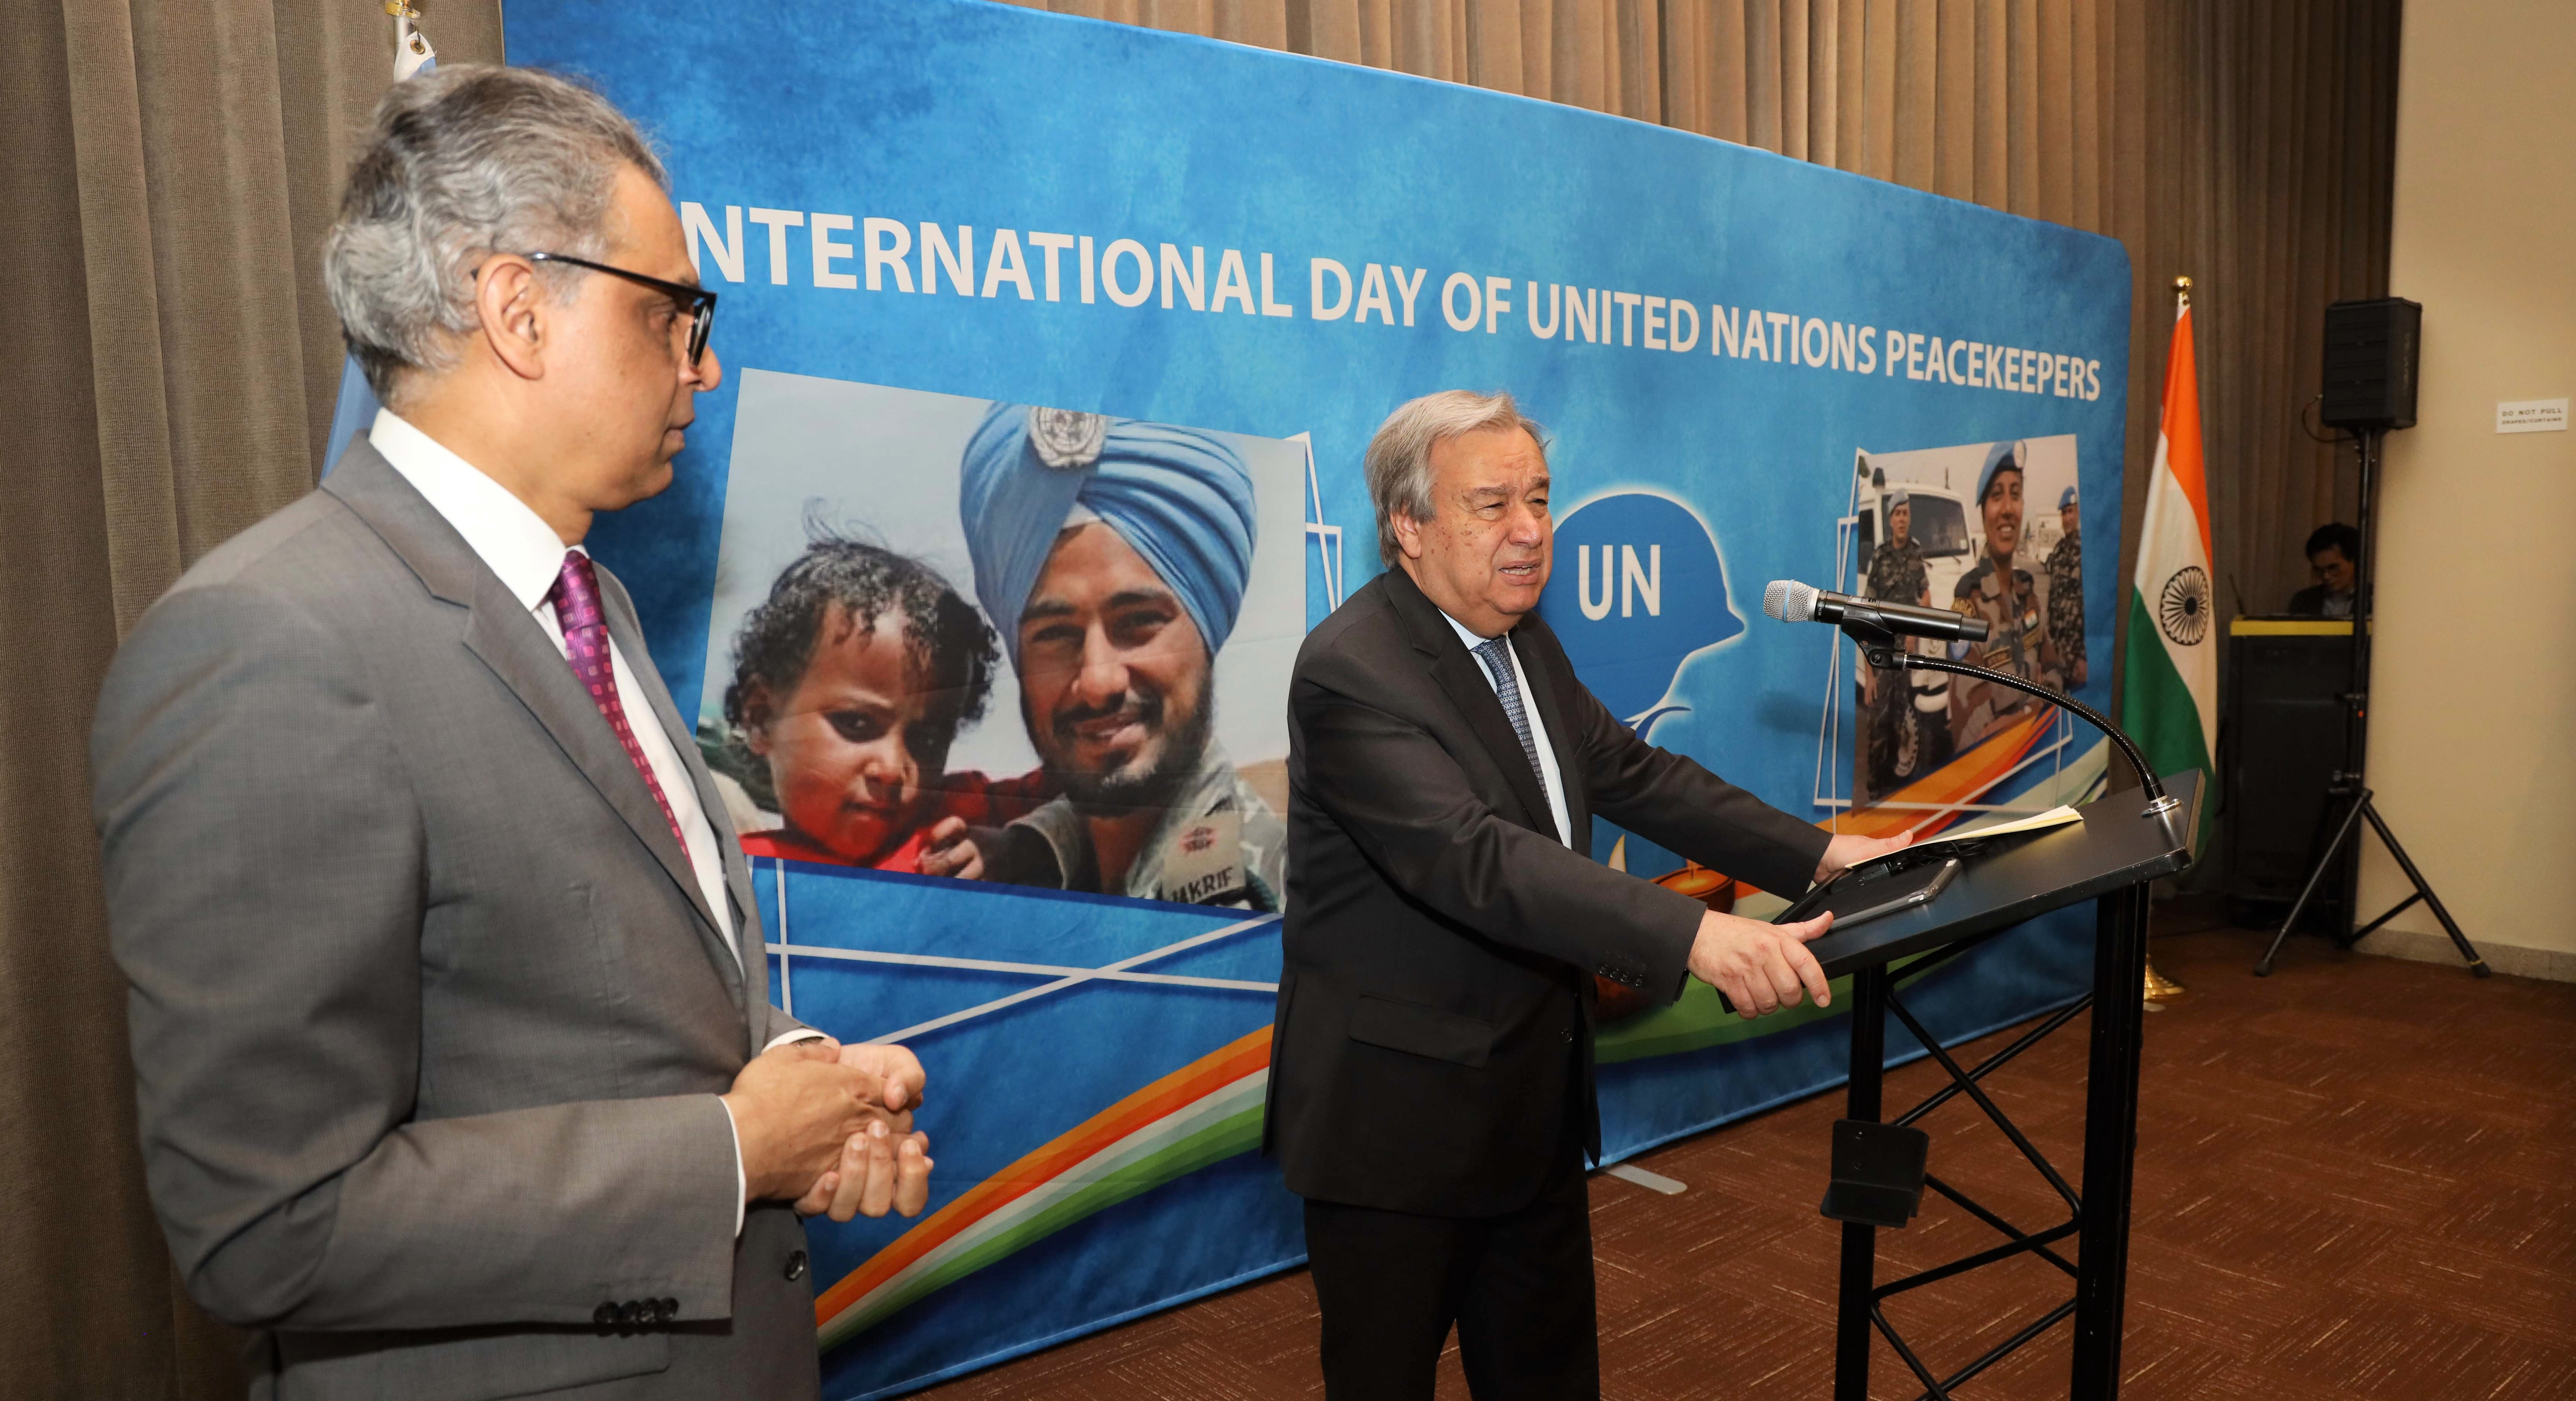 Commemorating International Day of United Nations Peacekeepers